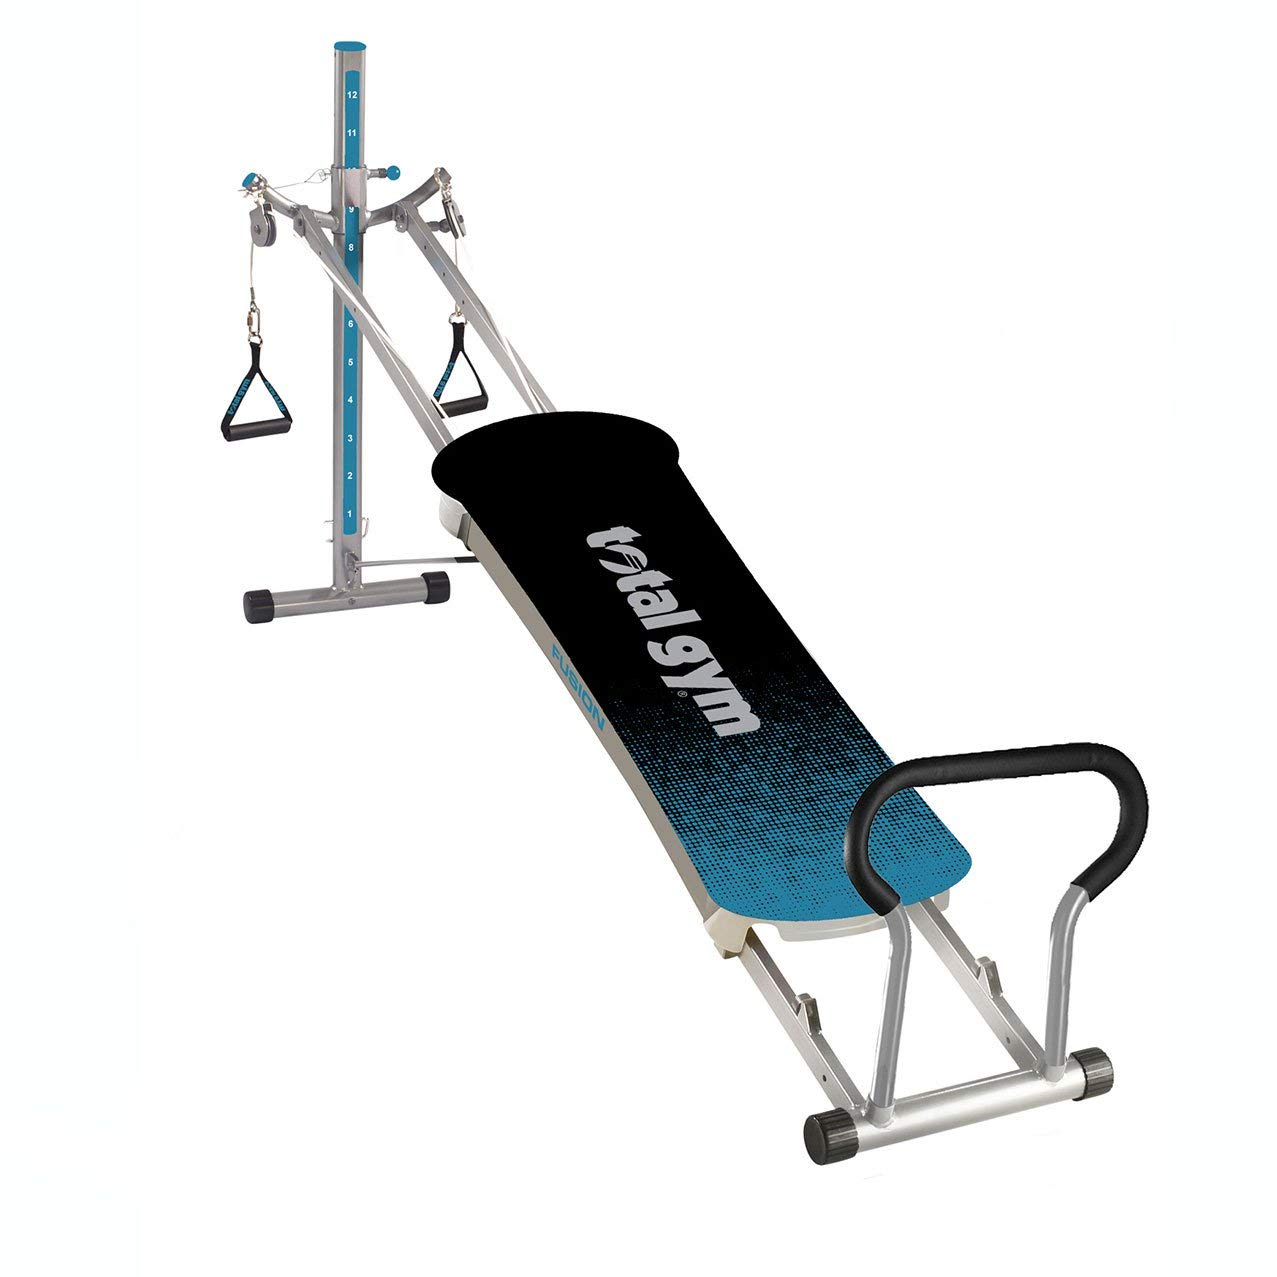 Total Gym Fusion Exercise Machine, Teal by Total Gym (Image #1)